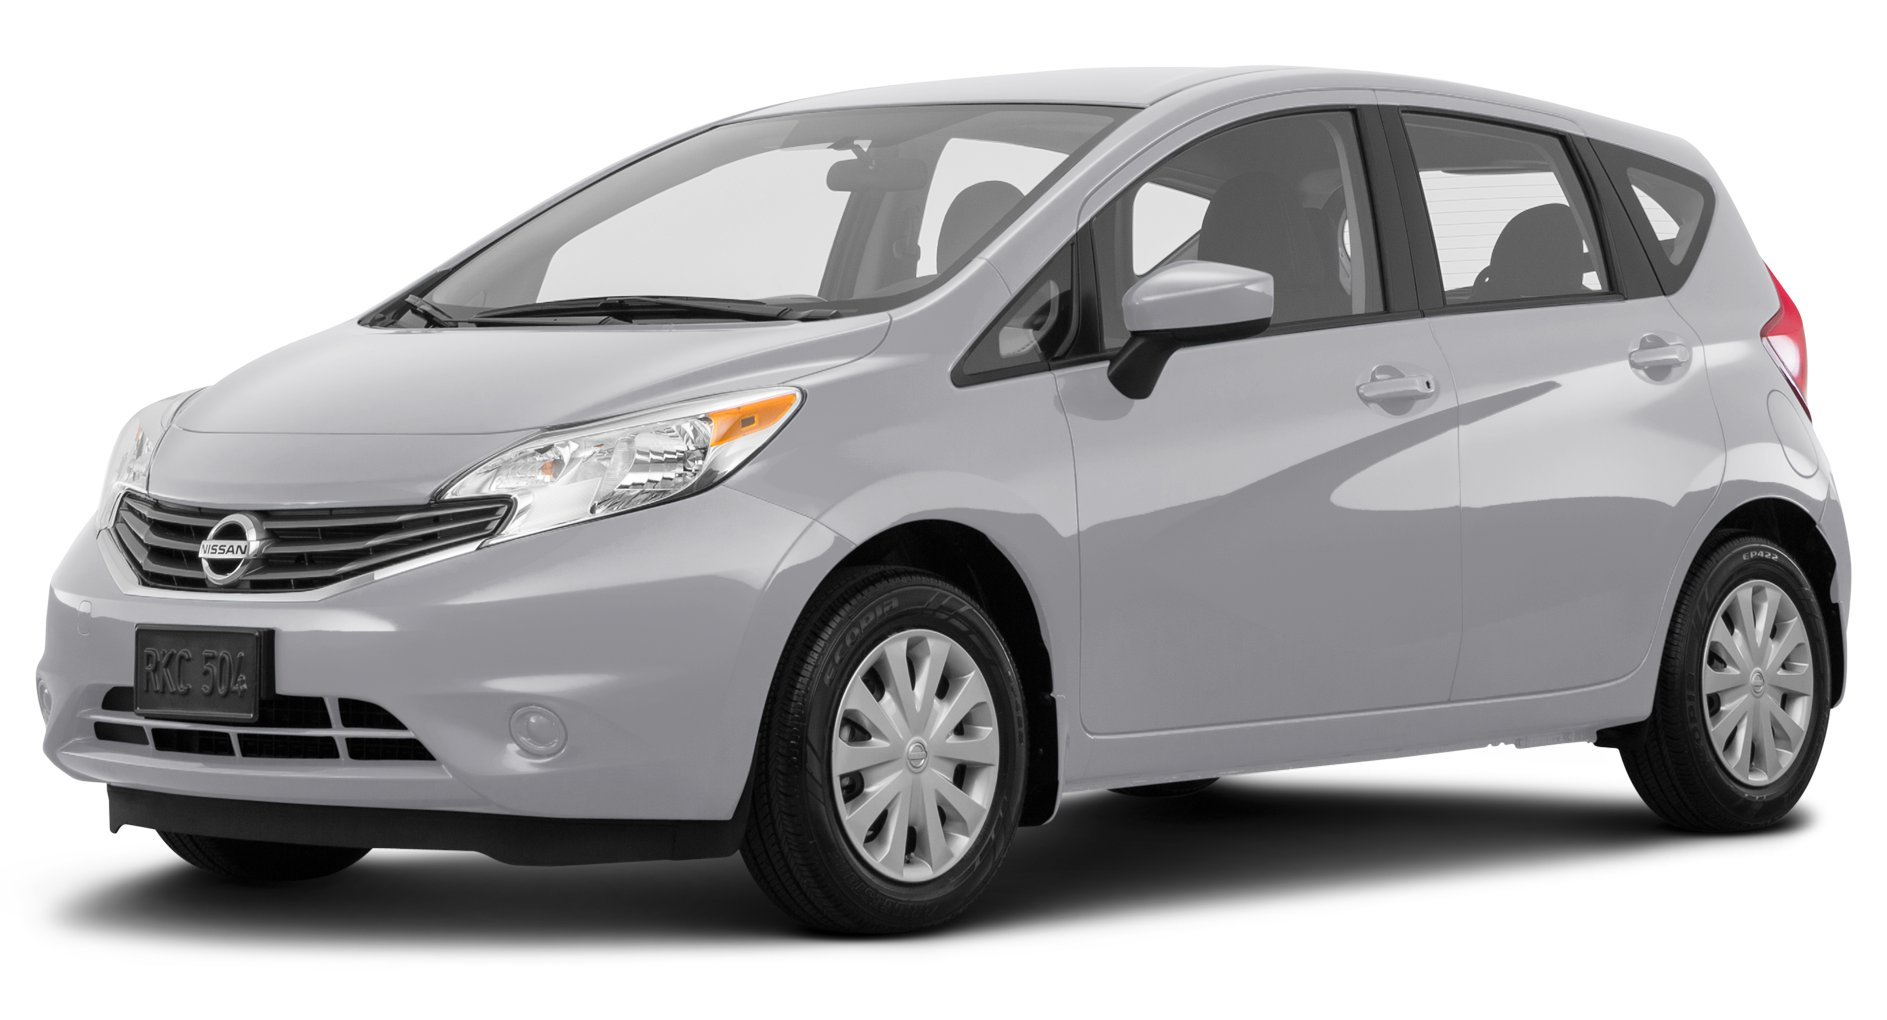 2016 nissan versa note reviews images and. Black Bedroom Furniture Sets. Home Design Ideas